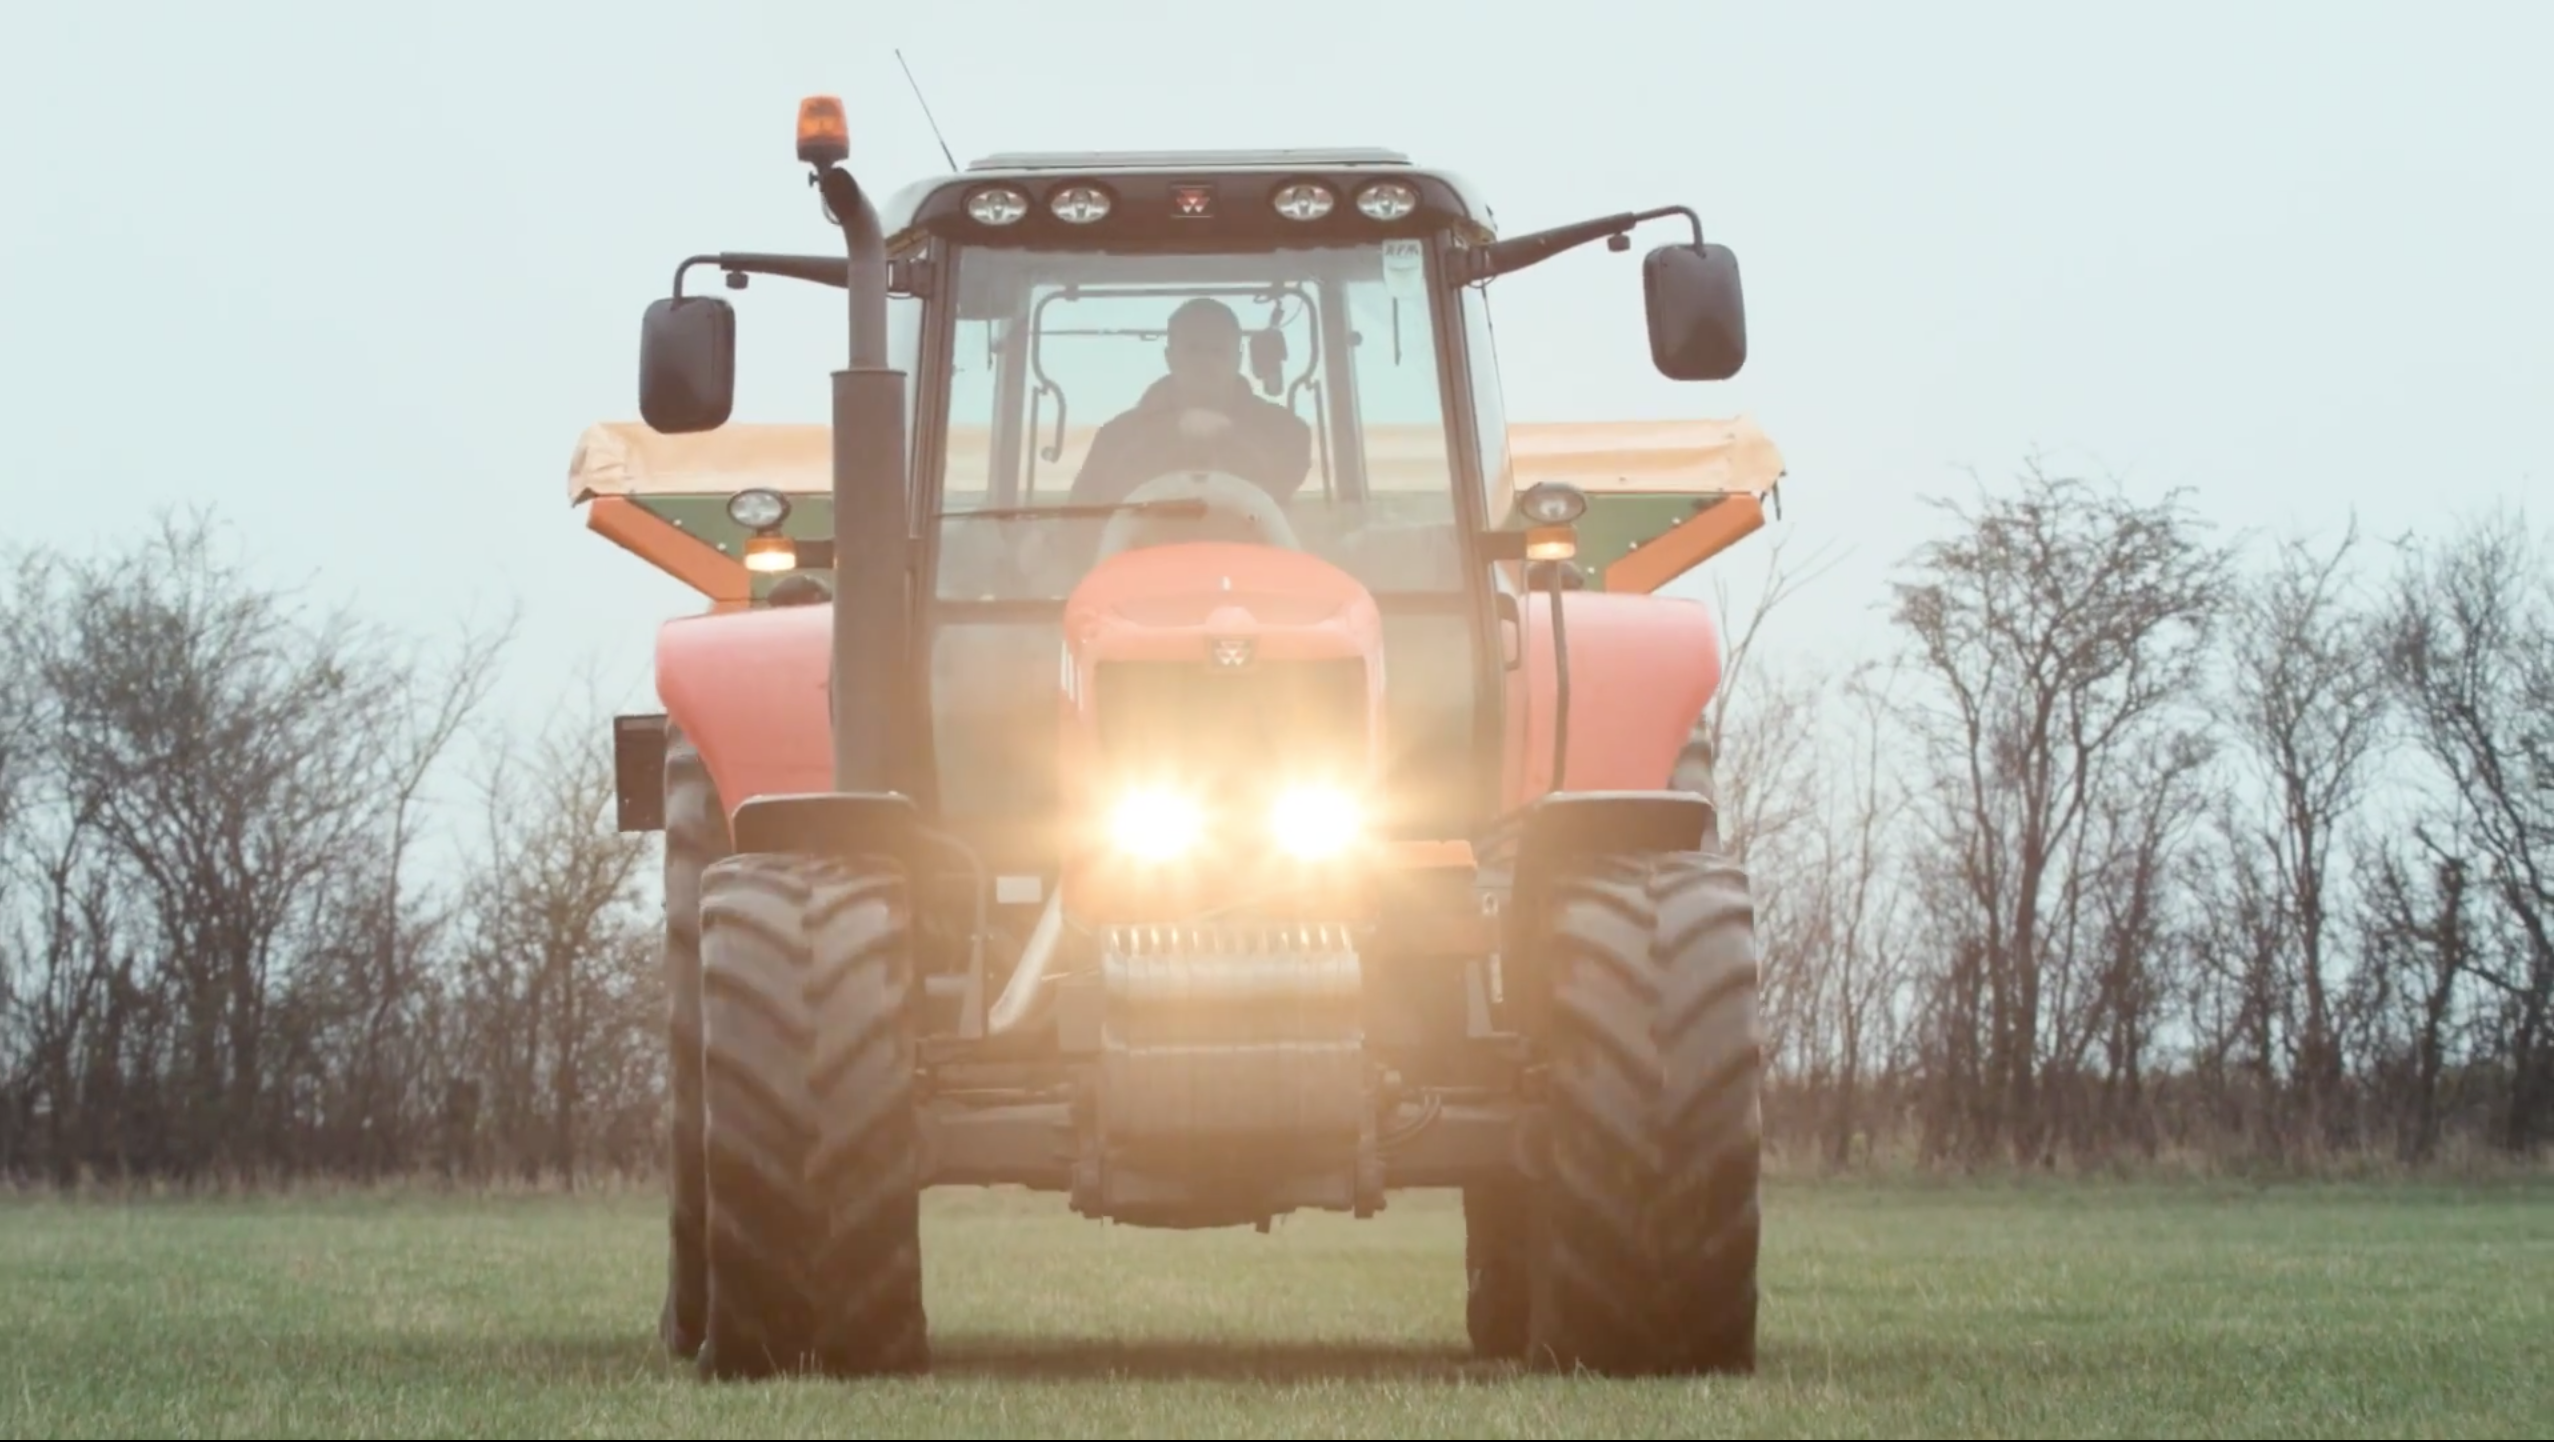 Life Size Media capture a tractor on the Ventive film set